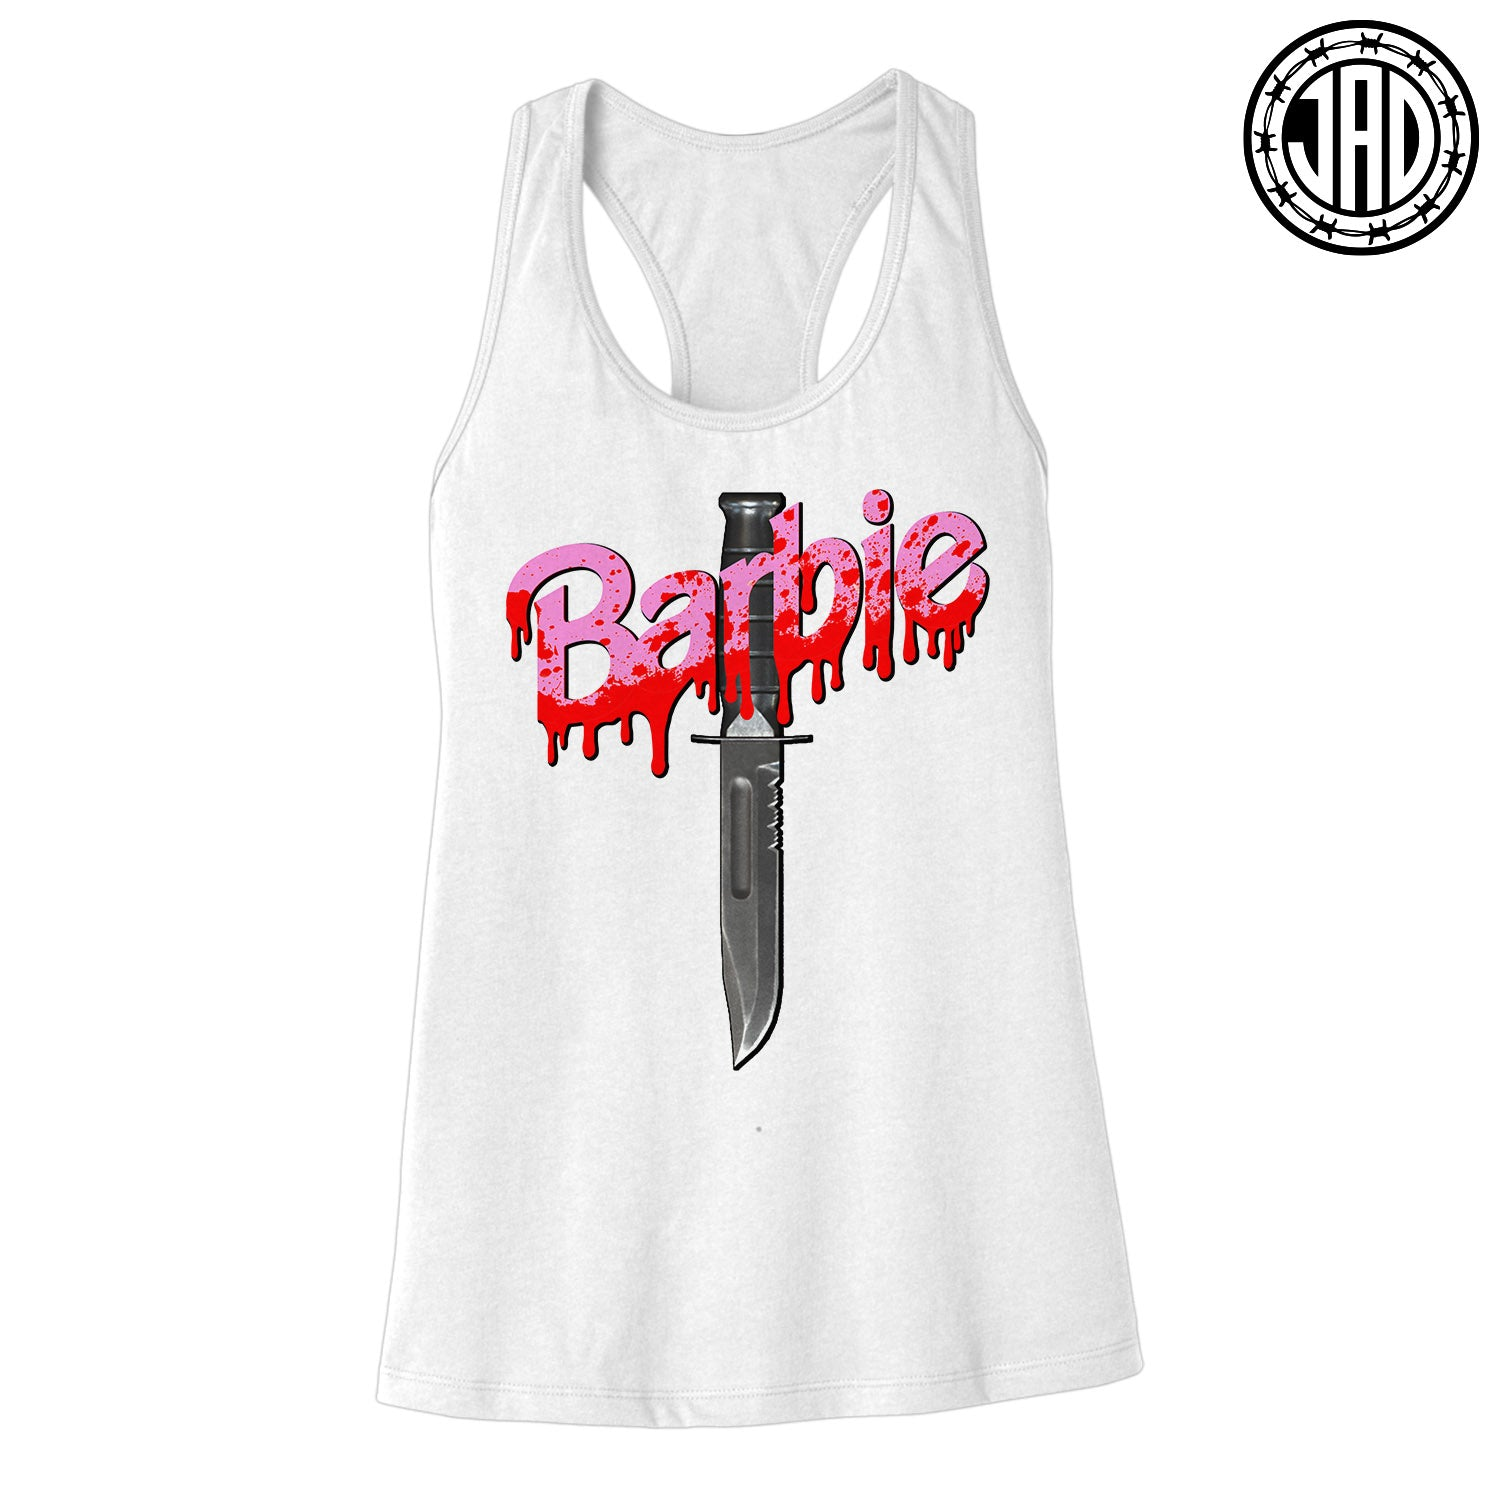 Barbie Killer  - Women's Racerback Tank